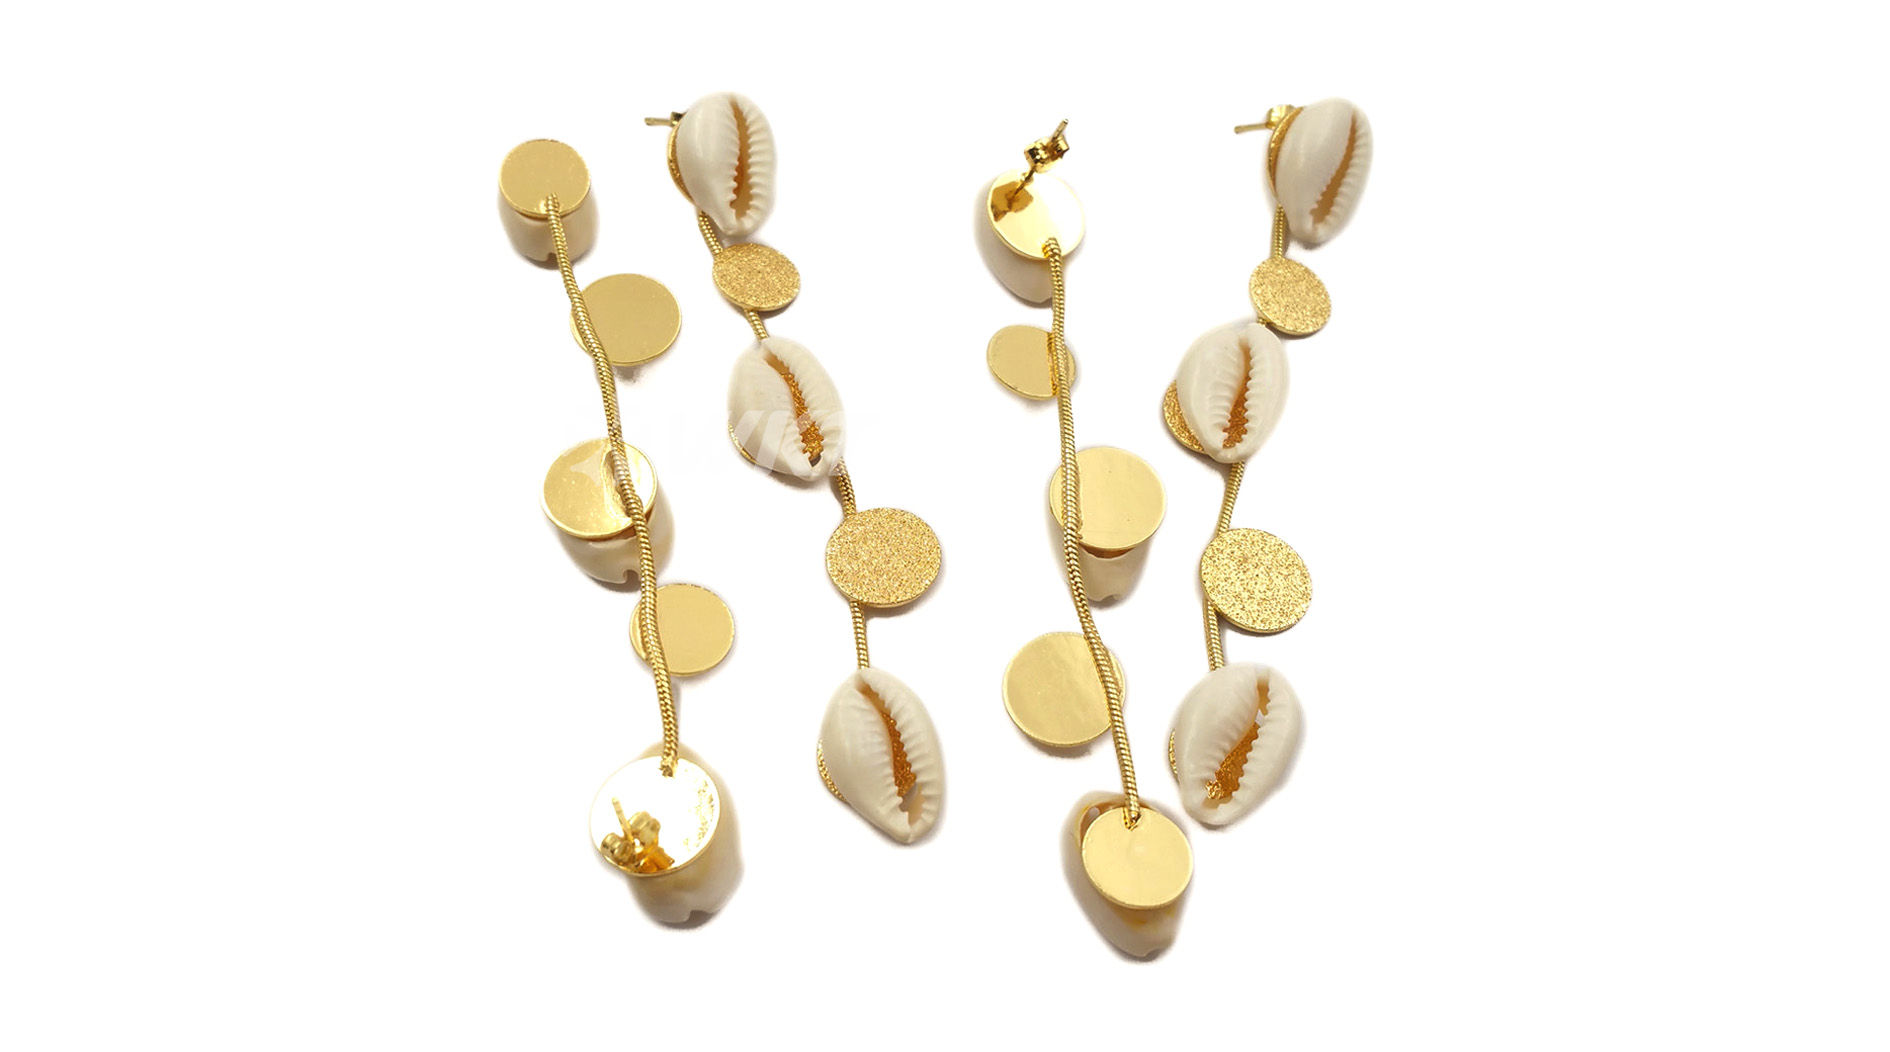 WT-E533 New design fashion Long earrings with round brass gold plate and natural shell Earring natural cowrie Earring